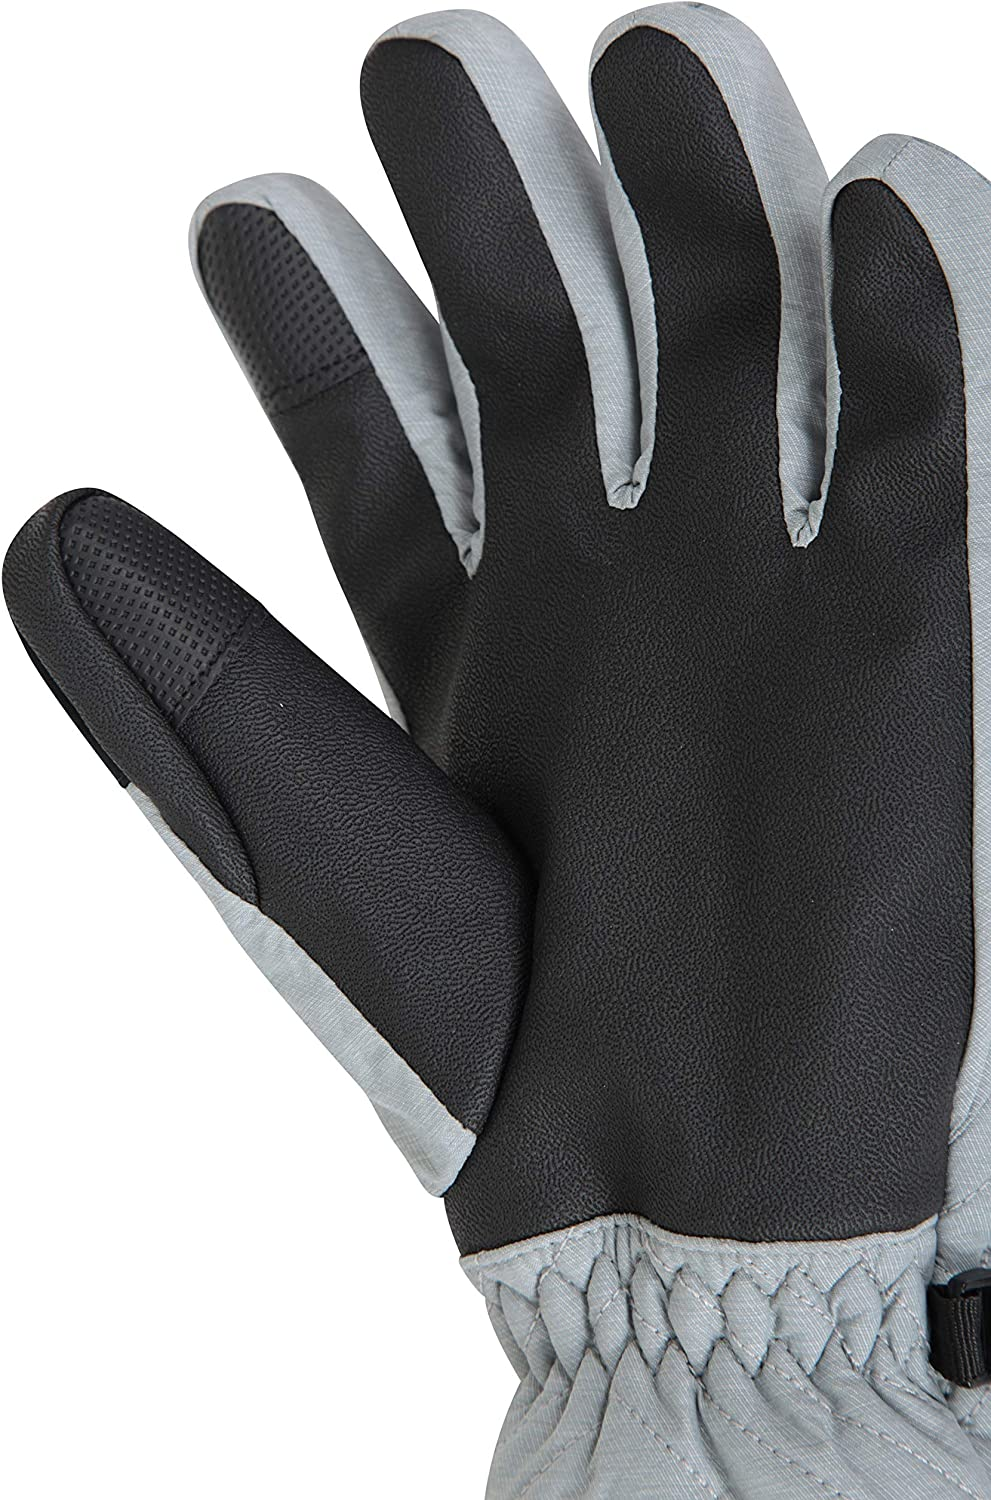 Mountain Warehouse Arctic Mist Womens Ski Mitten Gloves